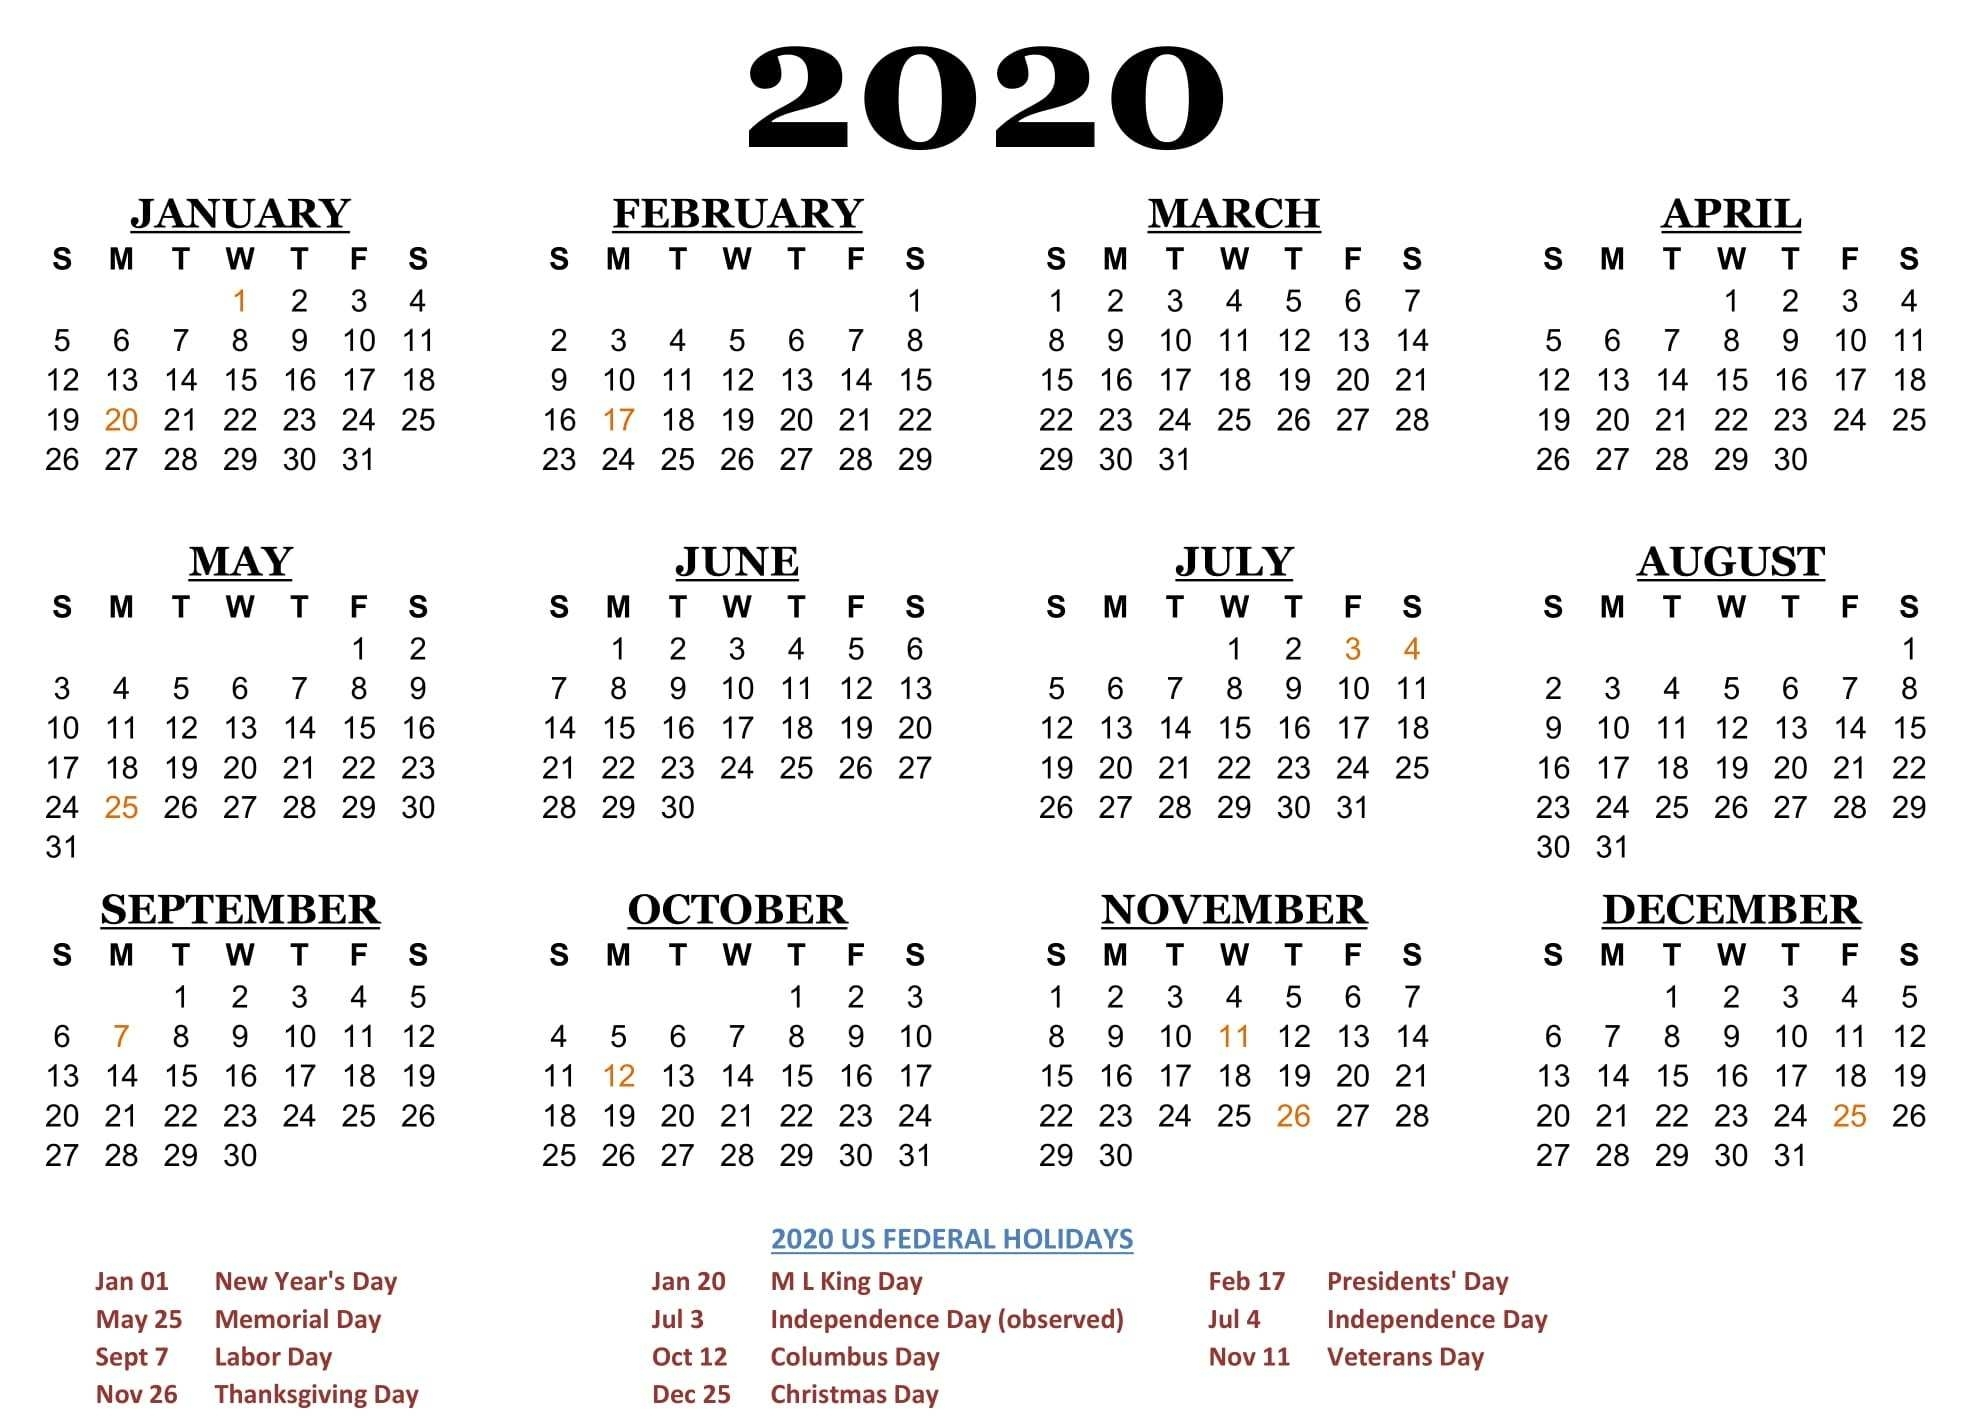 2020 One Page Calendar Printable Download | Calendarbuzz throughout 2020 Calendar Year To A Page